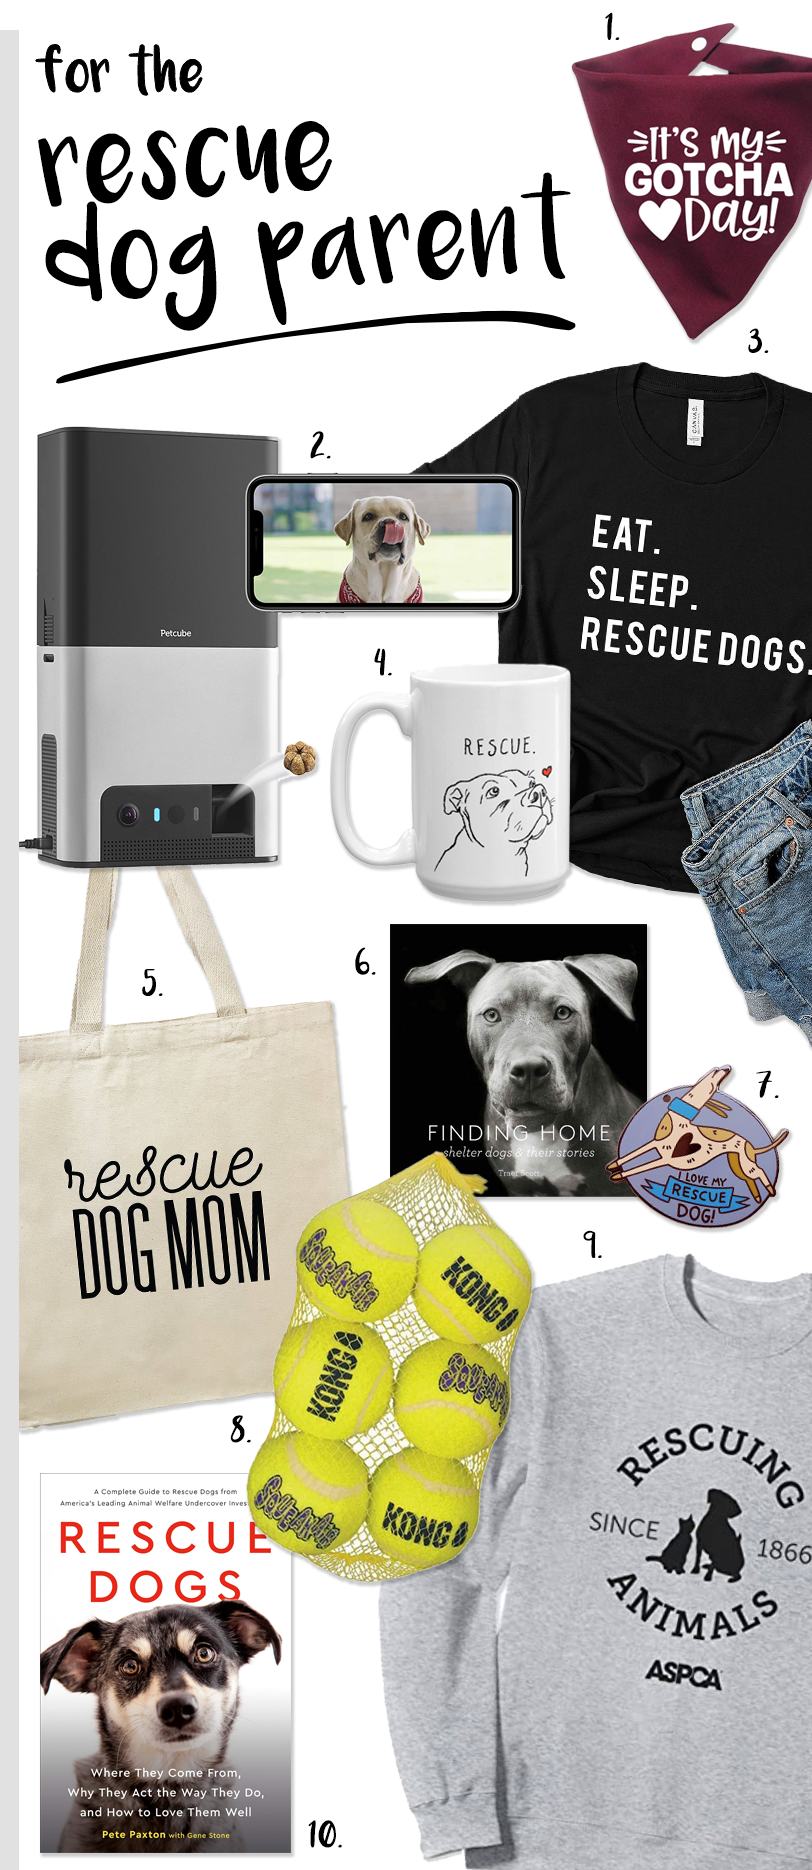 Gift ideas for rescue dog parents #dogparentgifts #adoptdontshop